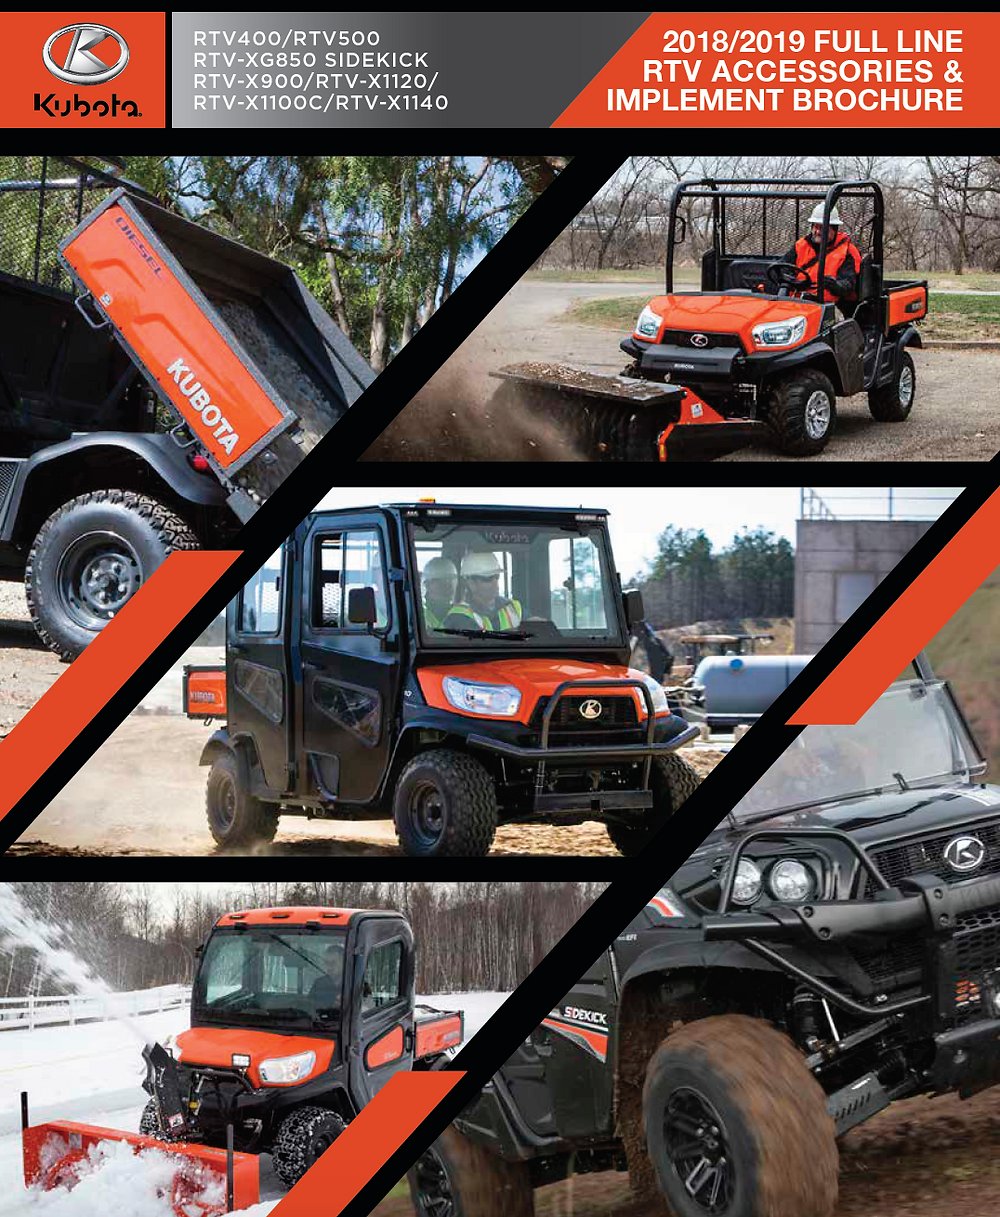 Kubota RTV Accessories Guide